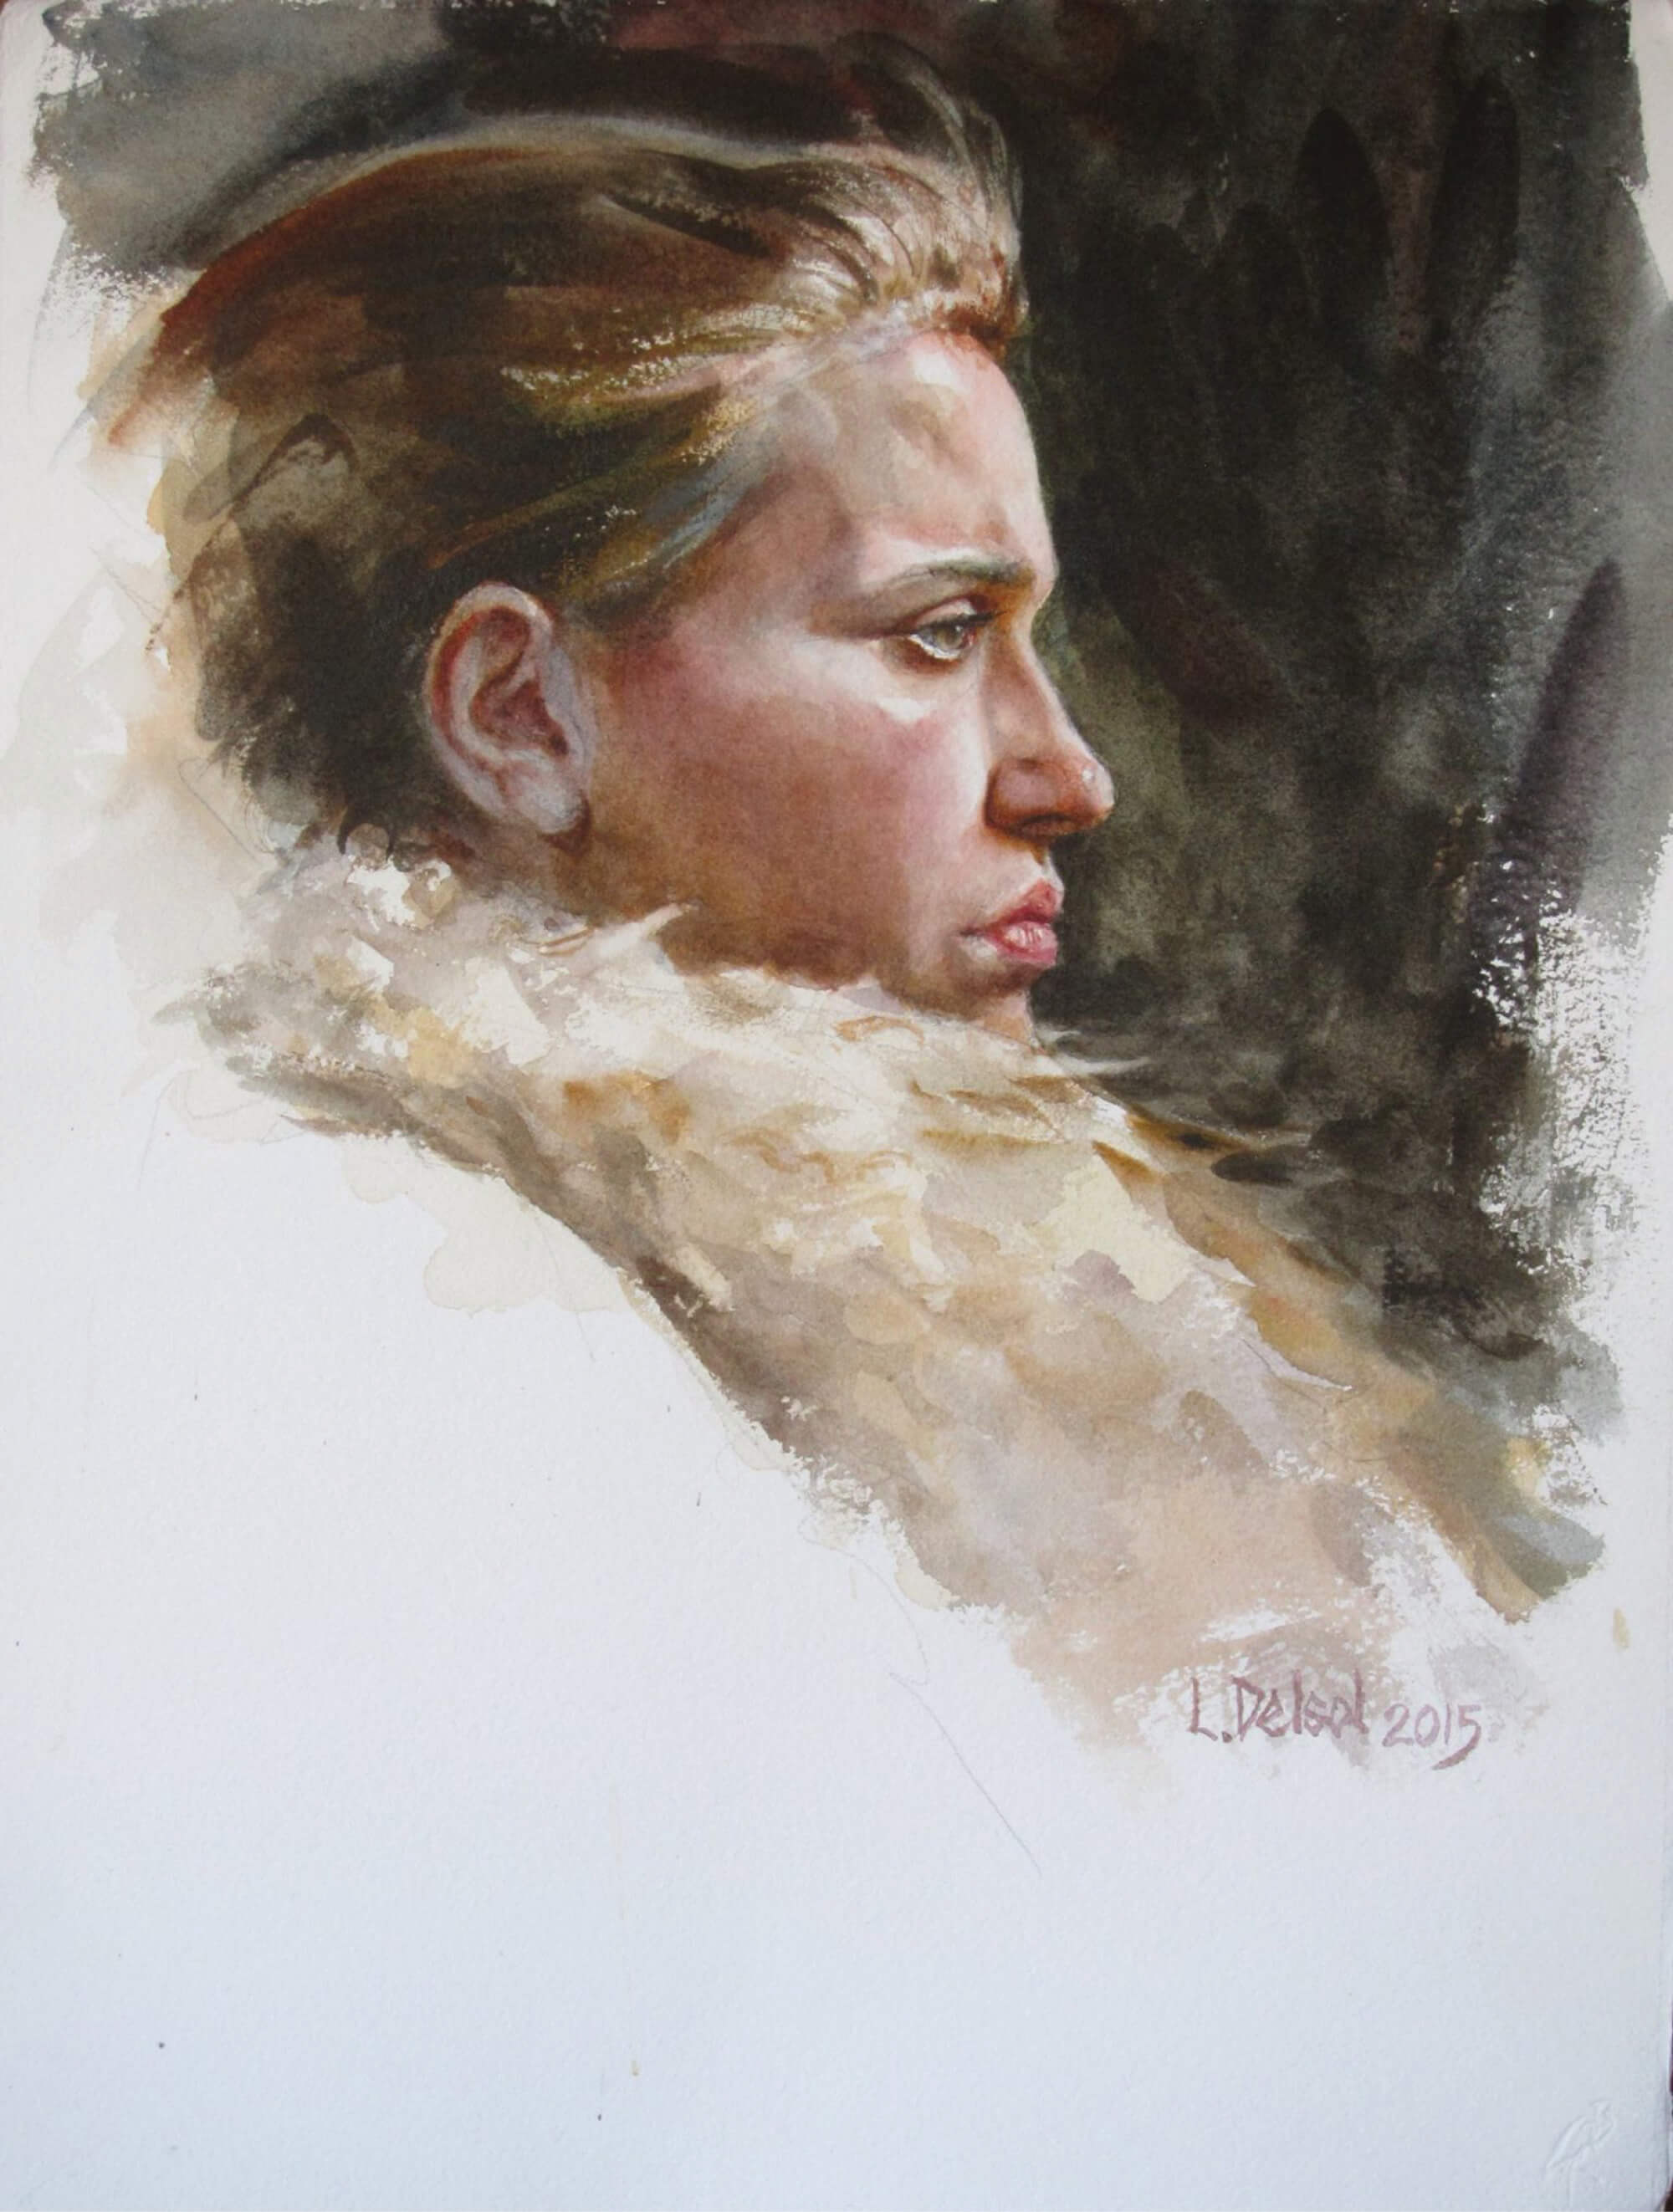 Watercolor profile portrait of a young woman with hair pulled back wearing a fur collar